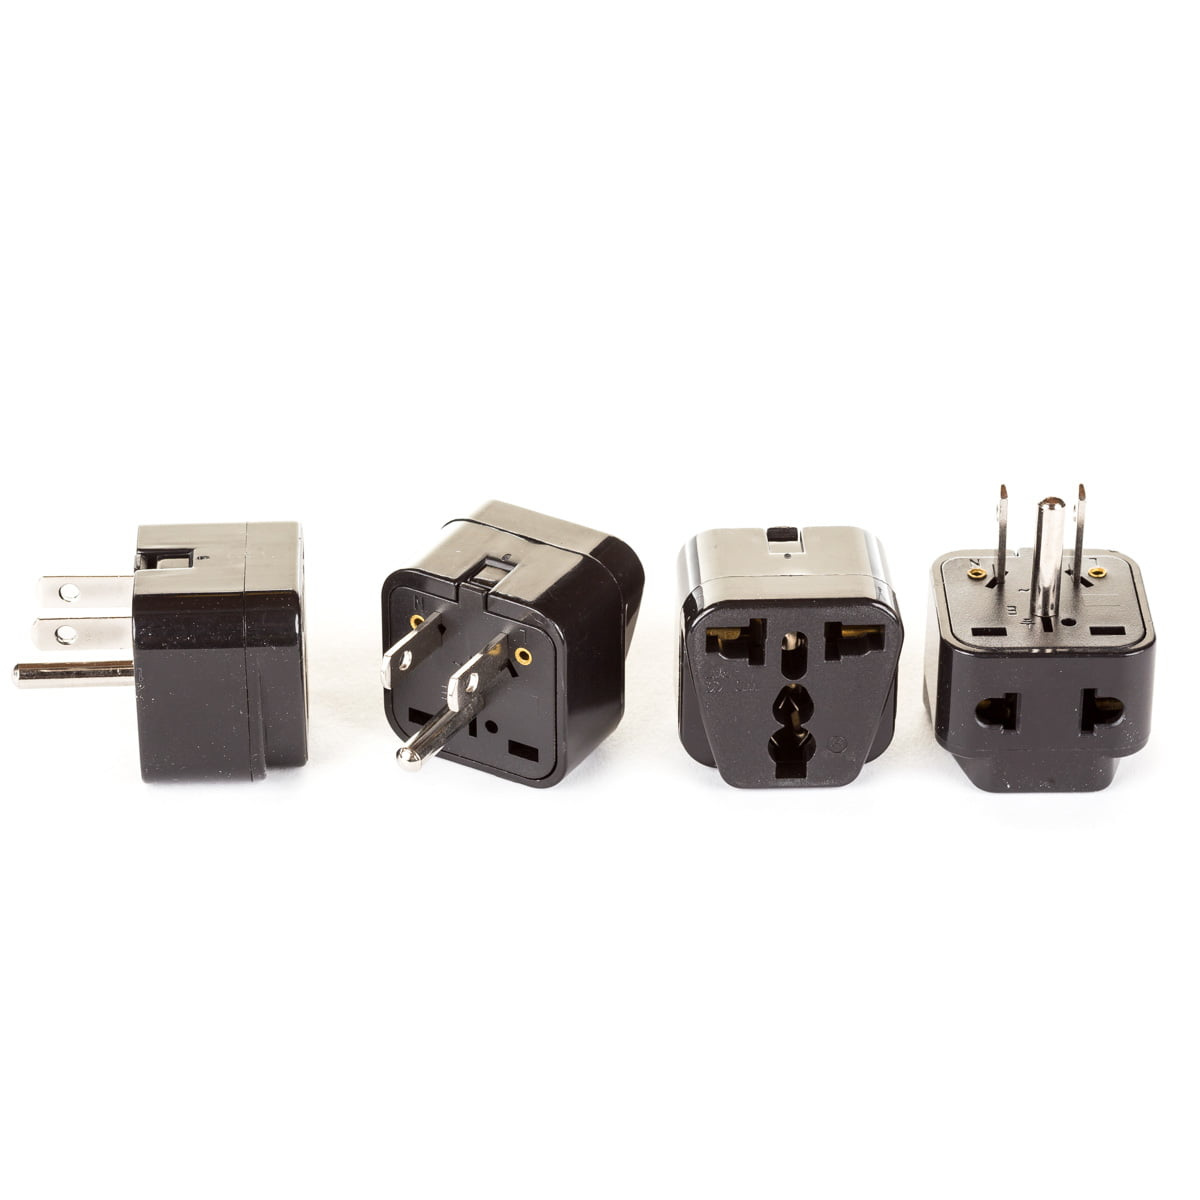 OREI 2 in 1 Universal to Grounded USA Adapter Plug (Type B)- 4 Pack, Black by Orei